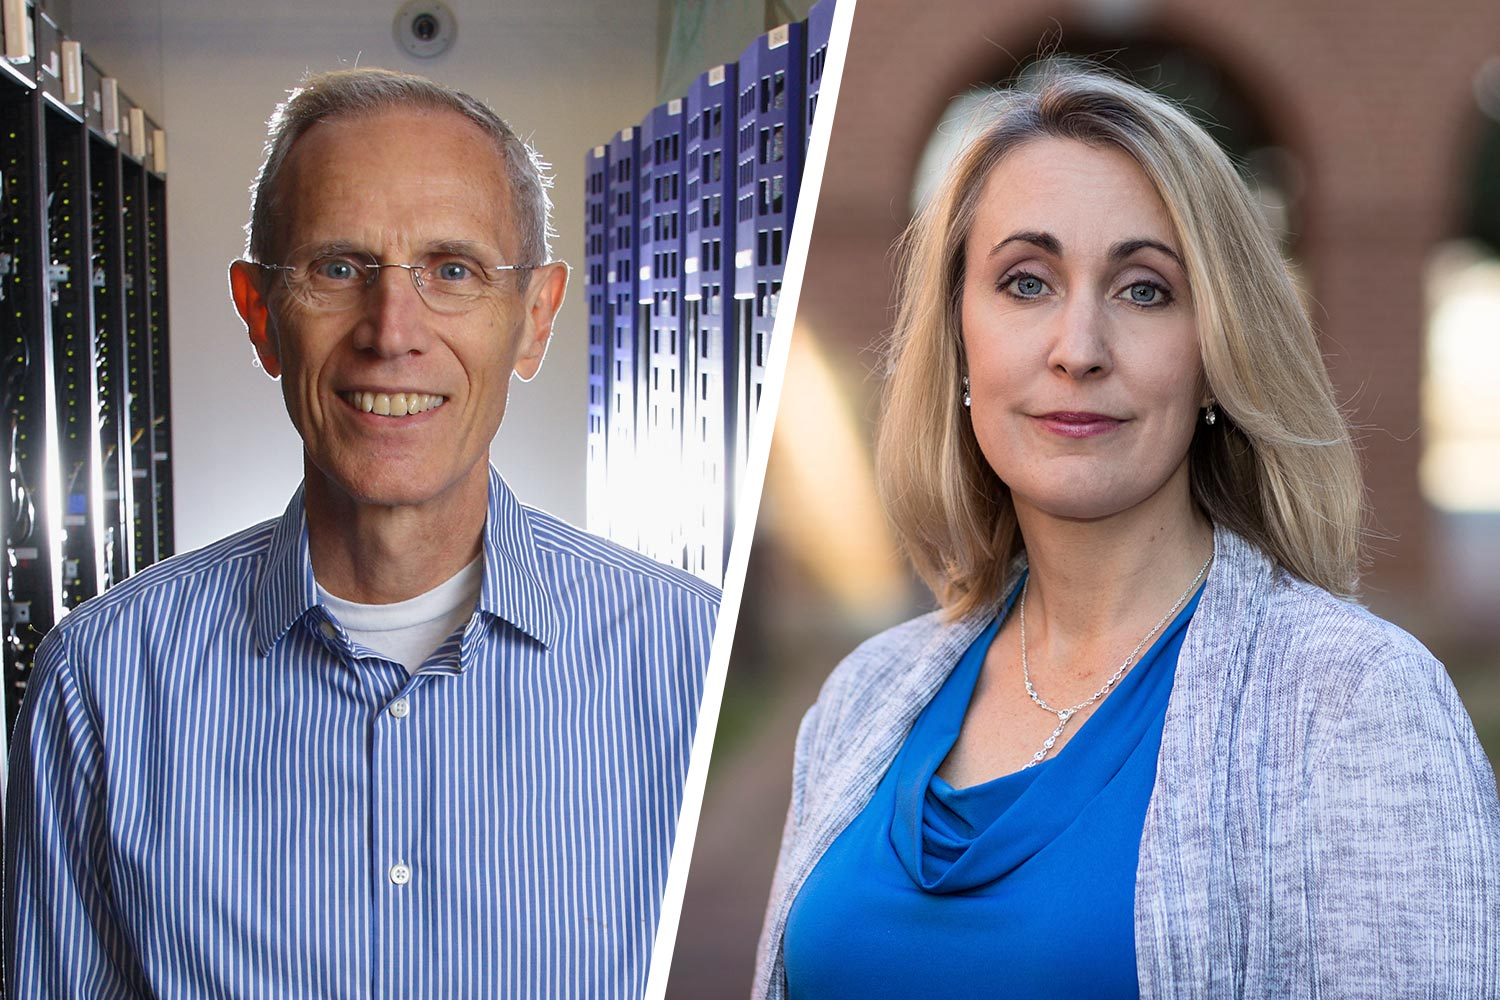 Don Brown, left, and Micah Mazurek are using data science to unlock the mysteries of autism.